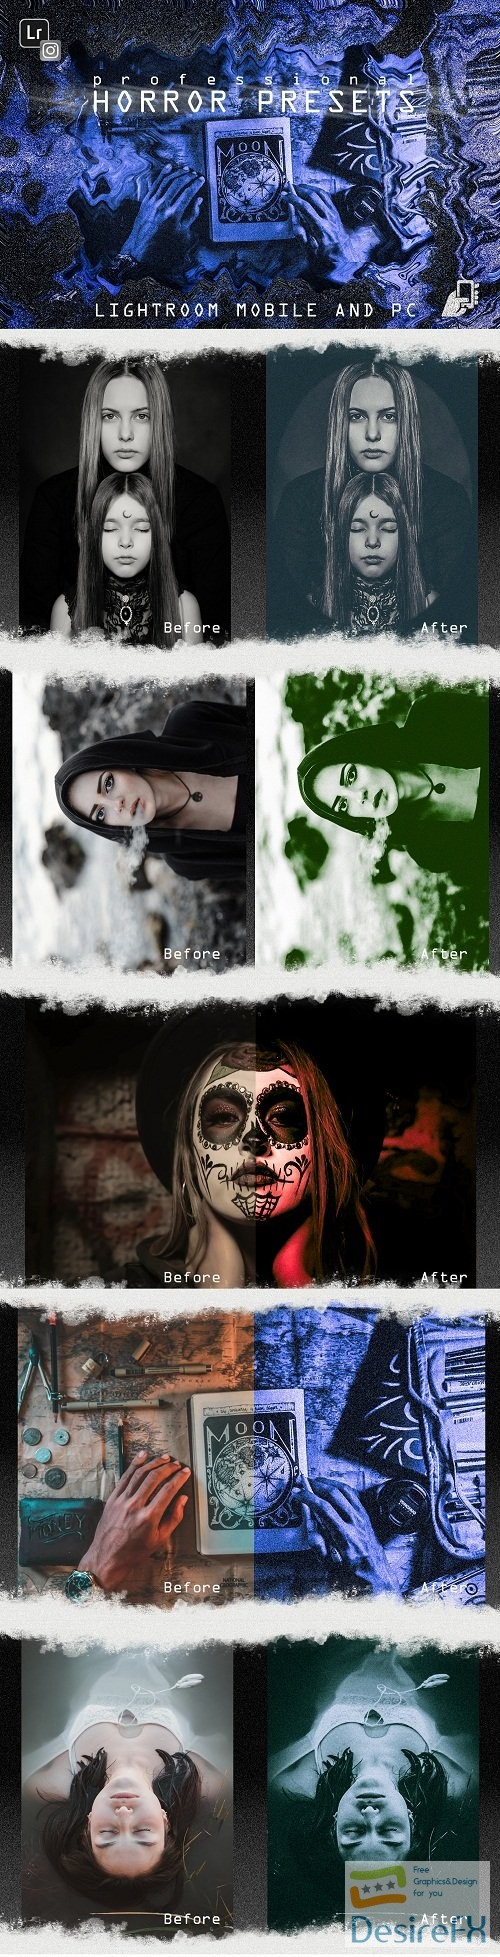 photoshop - 5 Horror presets lightroom mobile pc halloween black white - 255557